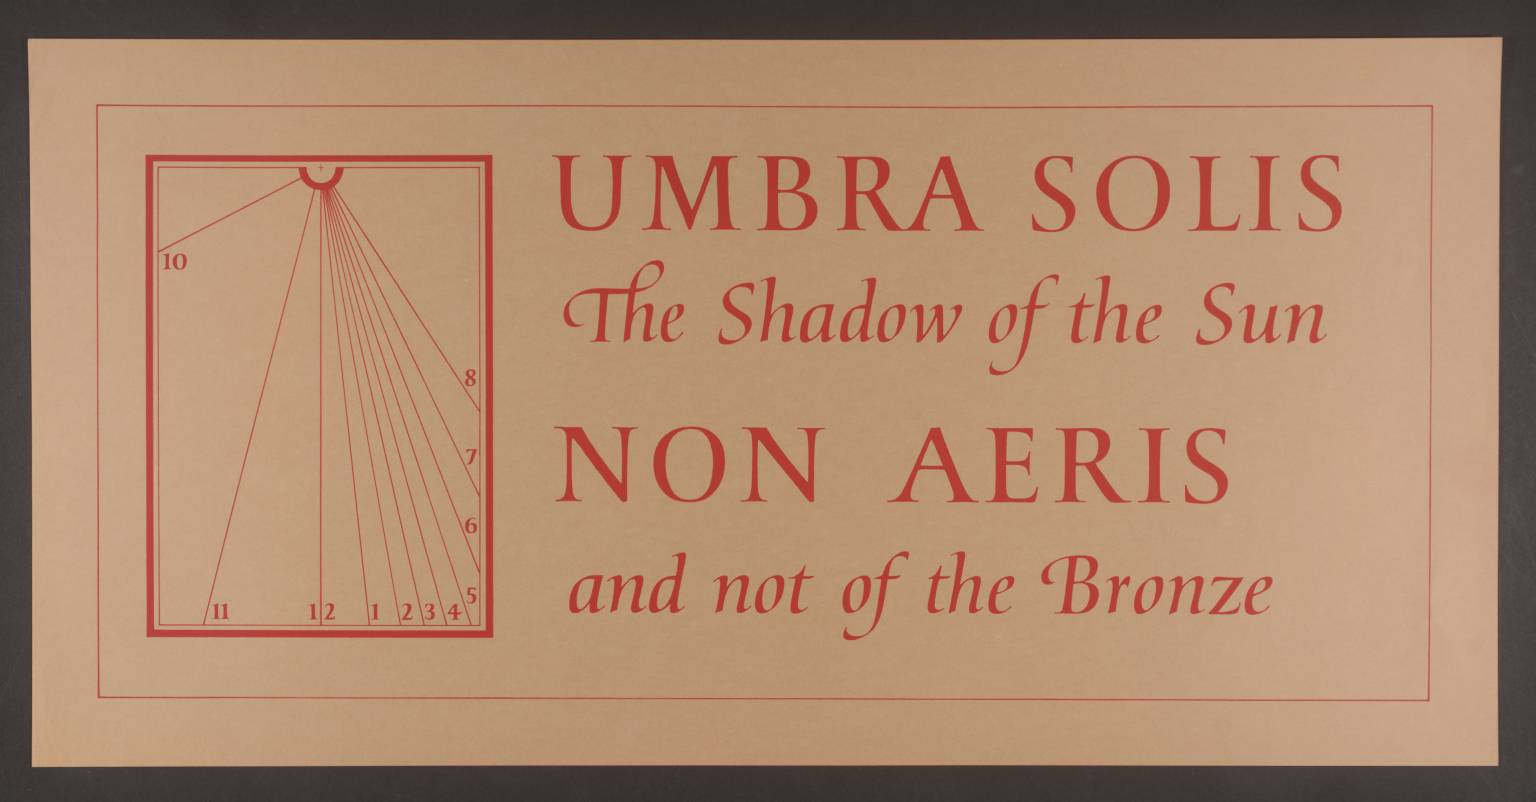 Sundial Print: Umbra Solis 1975 Ian Hamilton Finlay 1925-2006 Bequeathed by David Brown in memory of Mrs Liza Brown 2003 http://www.tate.org.uk/art/work/P11953